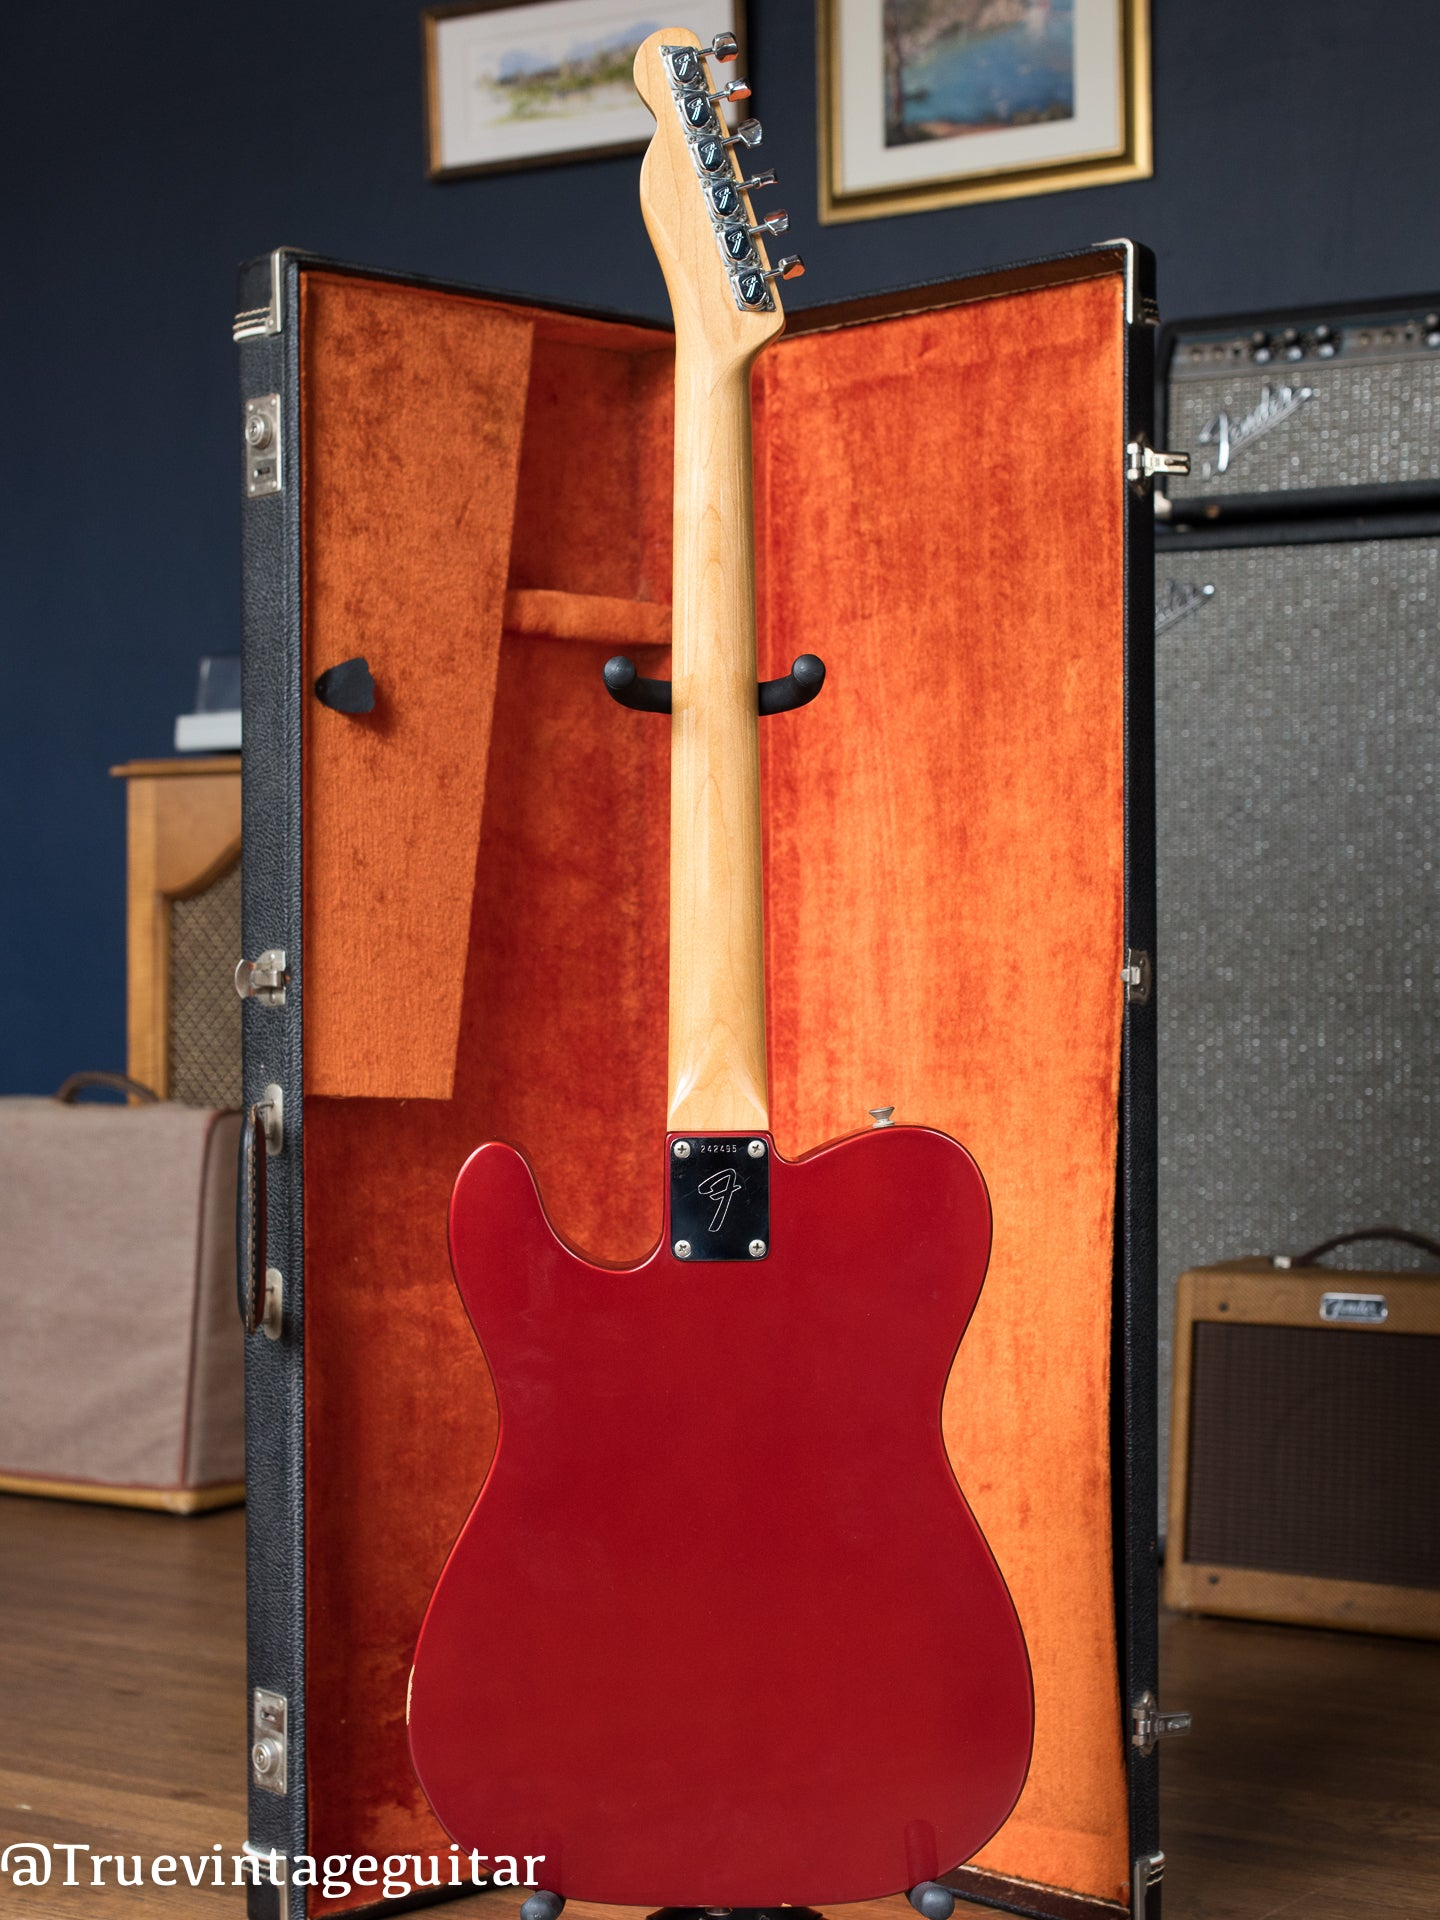 back, Vintage 1968 Fender Telecaster Candy Apple Red Metallic Bigsby electric guitar